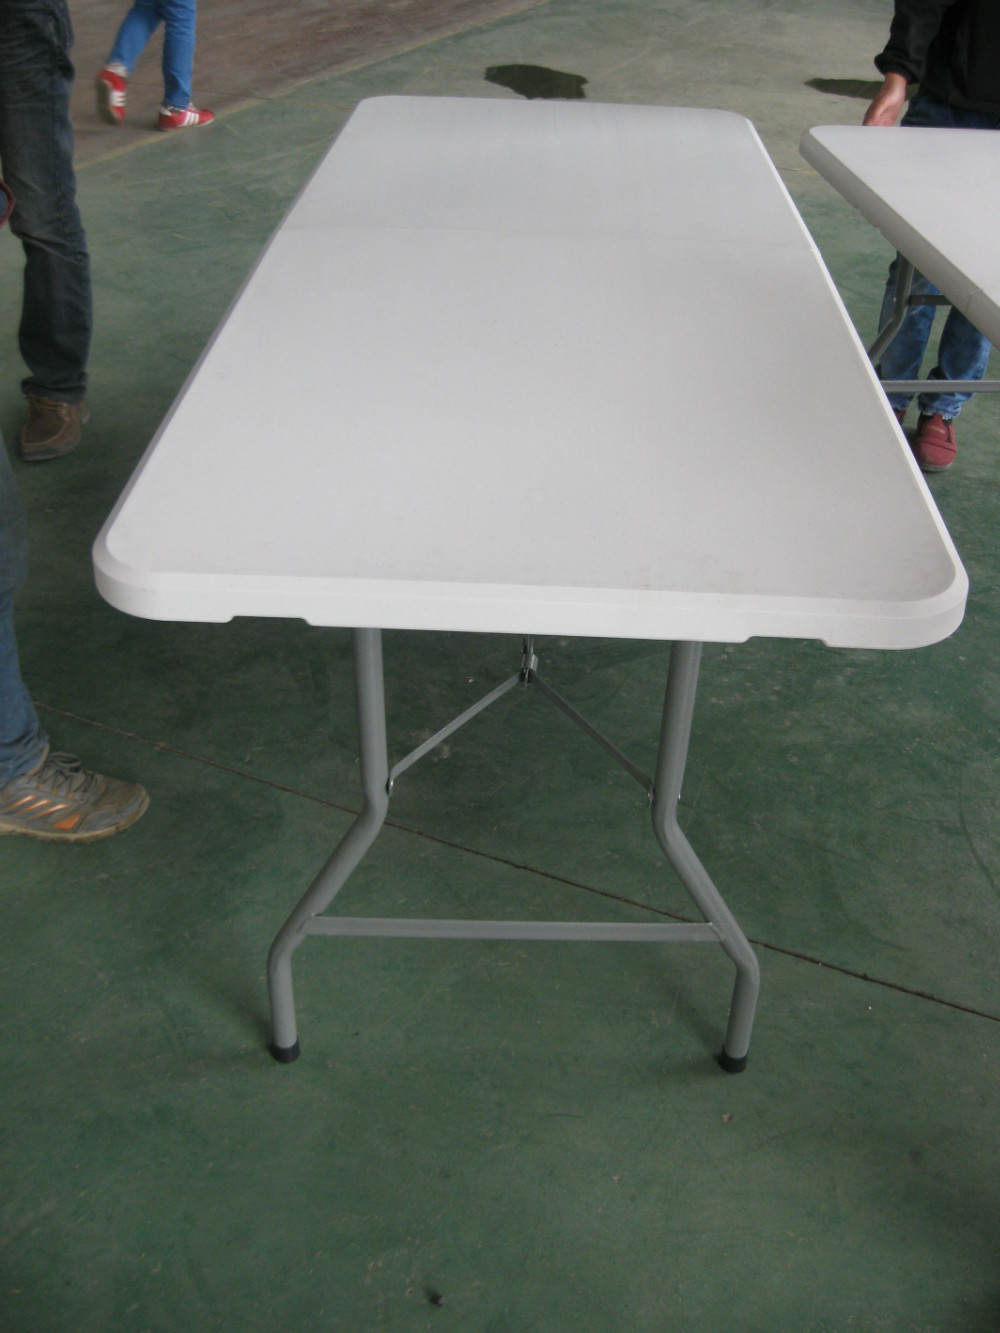 Outdoor Plastic Foldable Table hdpe Empty Table Panel With